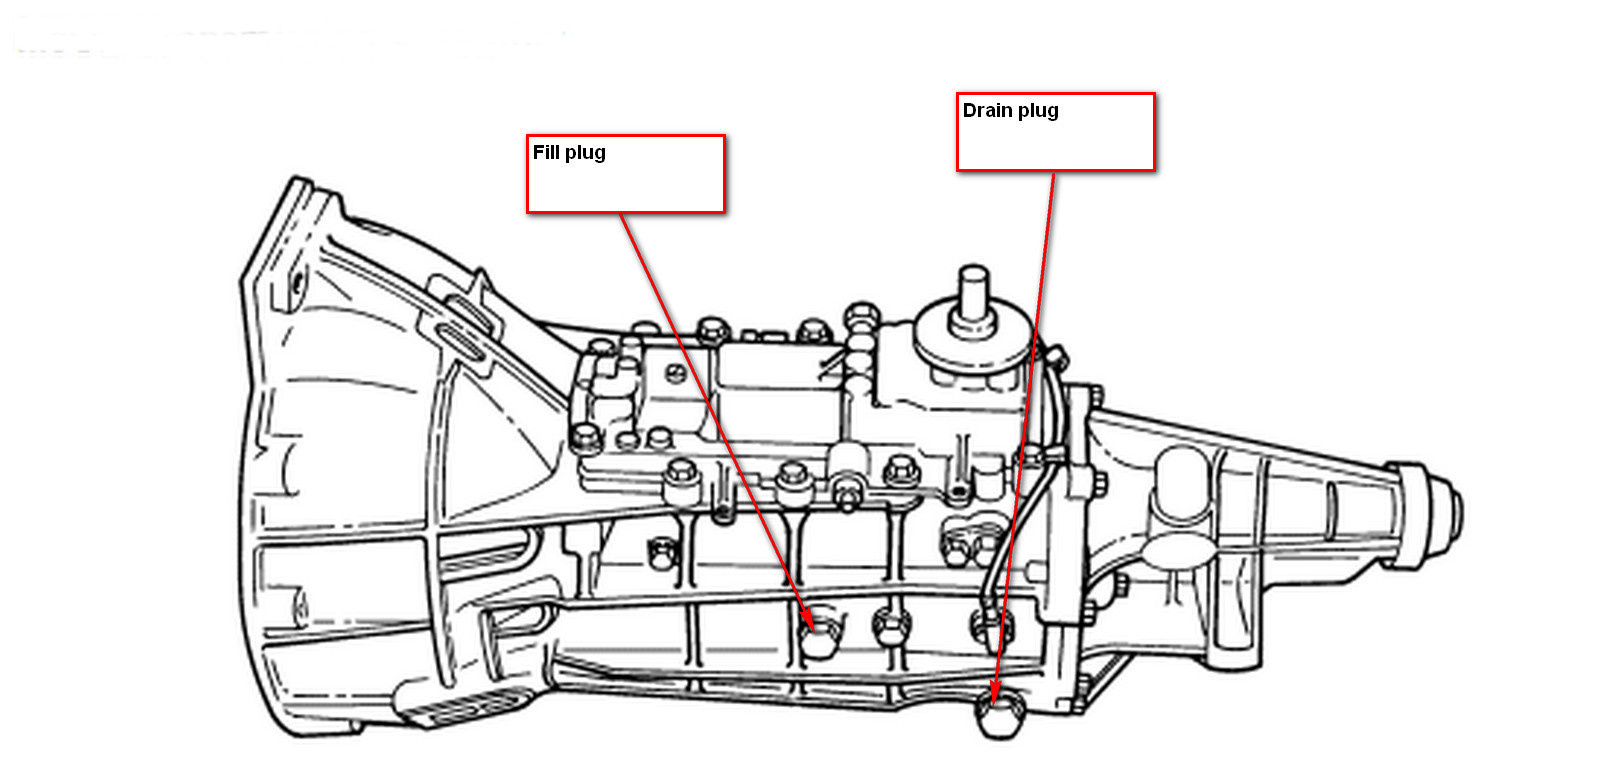 2005 F250 Transmission Diagram Schematics 2000 Ford F 150 5 4l Engine Ranger Questions How Do You Fill Oil In 91